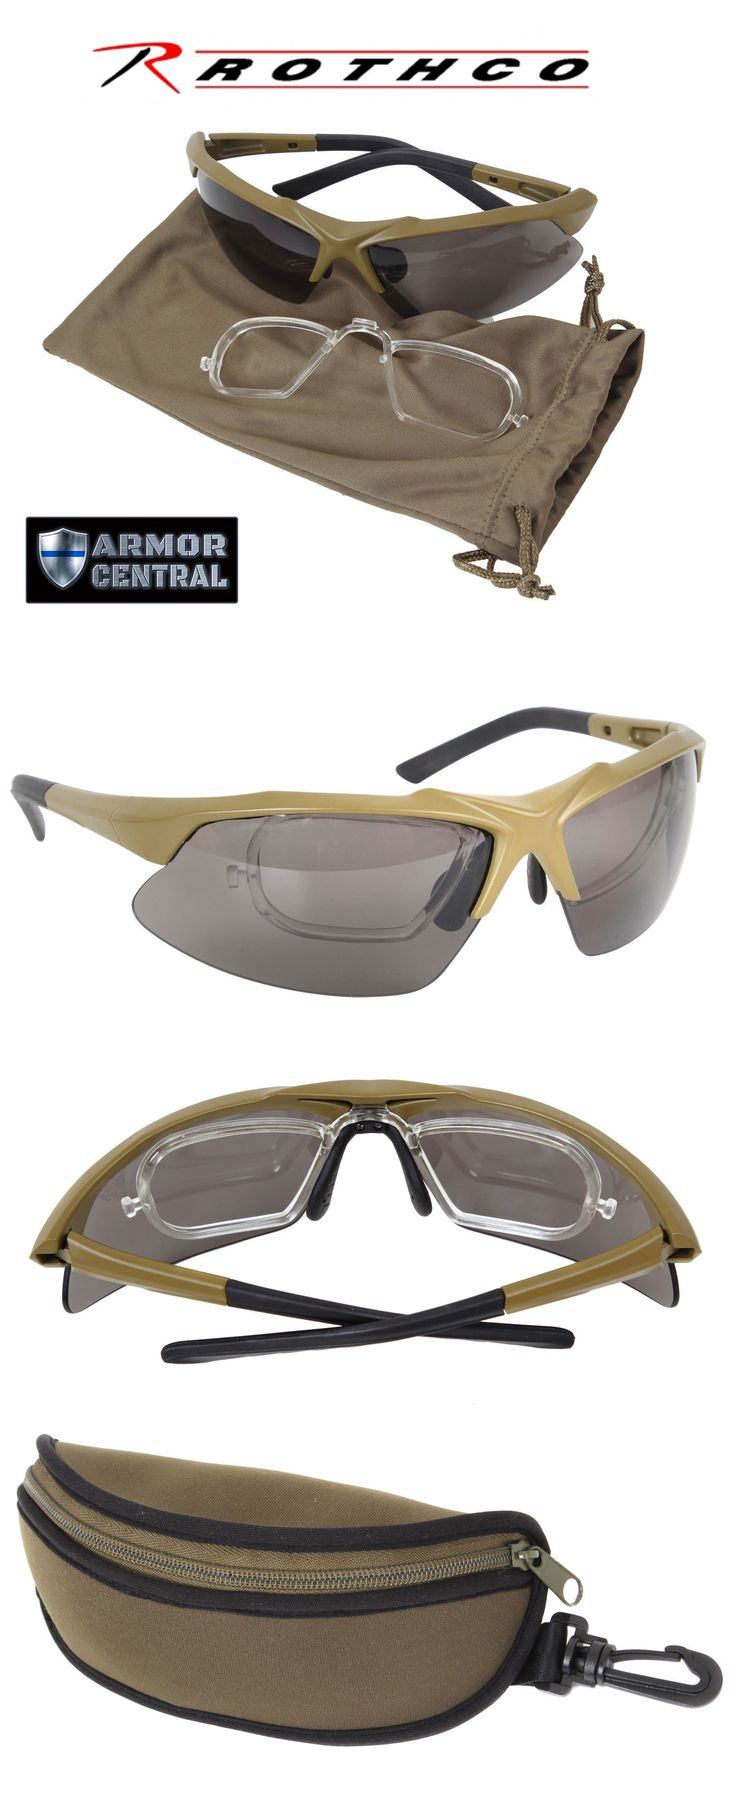 Shooting and Safety Glasses 151549: Rothco Coyote Tactical Eyewear Sunglasses Prescription And Ballistic Lens - 10537 -> BUY IT NOW ONLY: $31.95 on eBay!